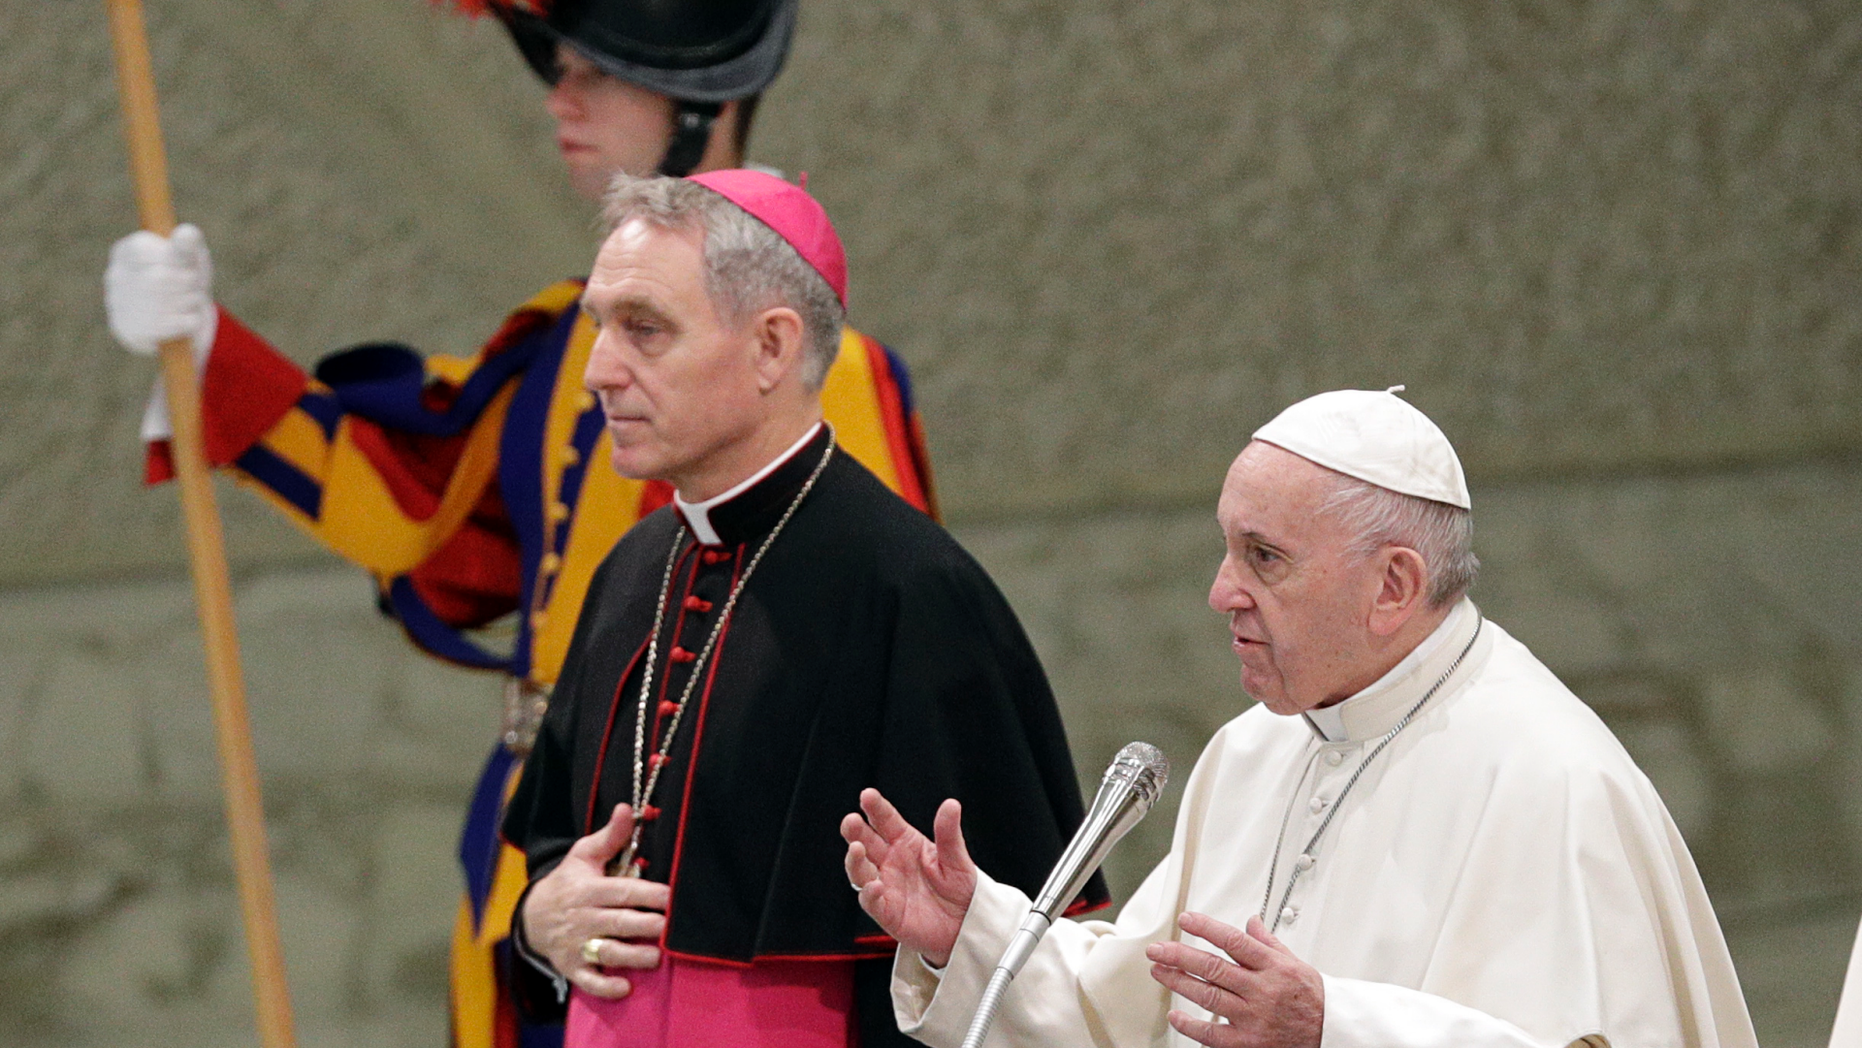 Pope Francis flanked by Monsignor Georg Gaenswein blesses the faithful on the occasion of the weekly general audience, at the Vatican, Wednesday, Dec. 19, 2018. (AP Photo/Gregorio Borgia)